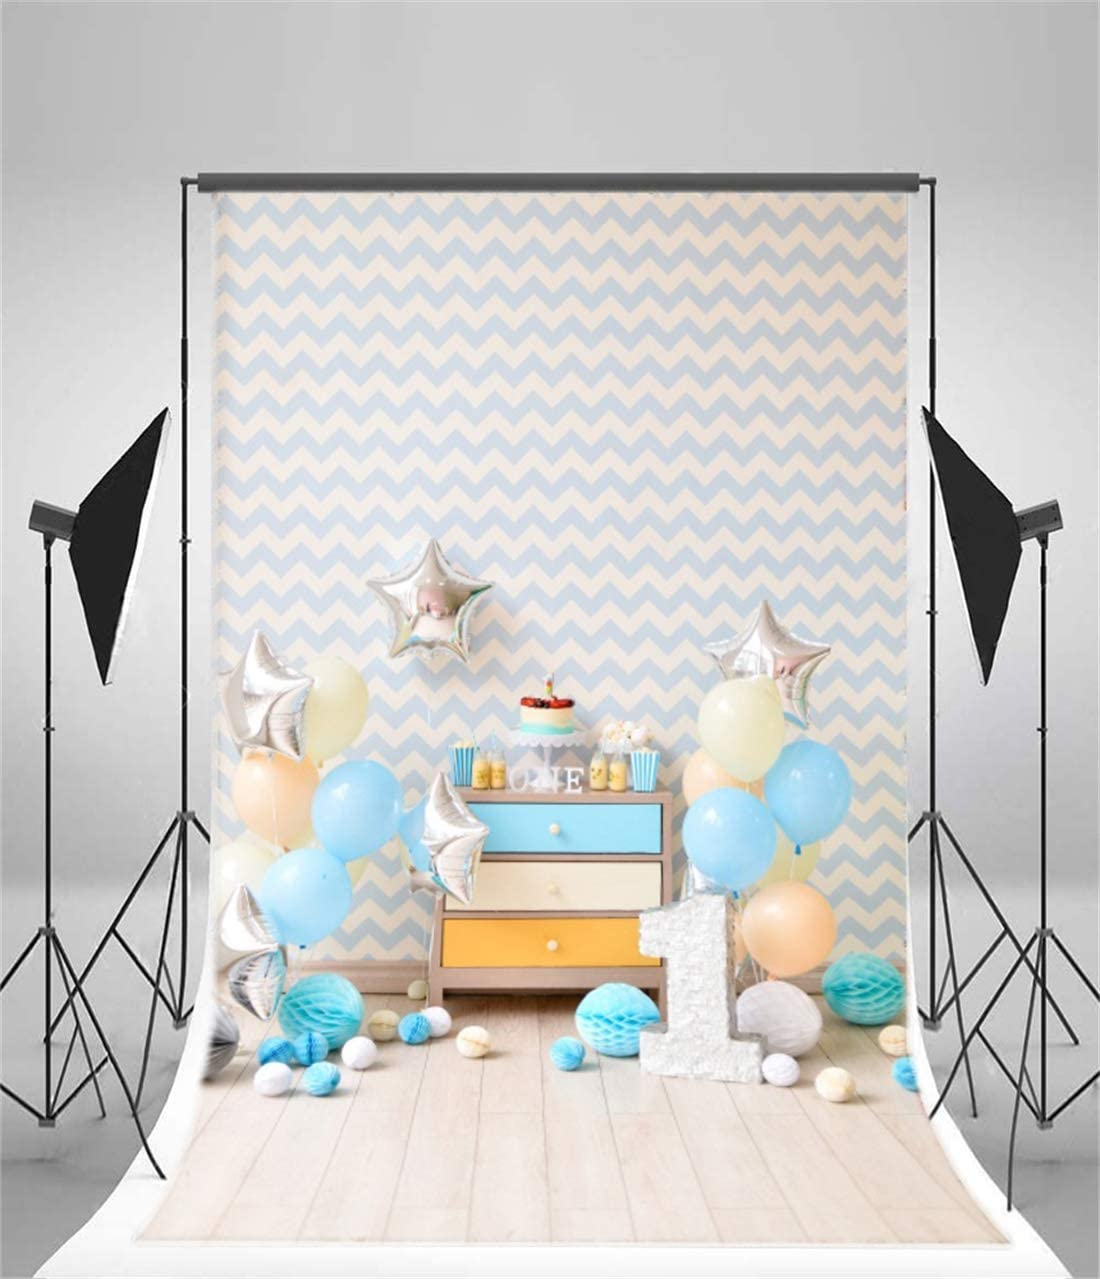 Yeele Birthday 4x6ft Photography Backdrop Happy Birthday Paper Flowers Blue Balloon One Year Old Wave Light Brown Wooden Floor Photo Backdrop Baby 1st Portrait Shooting Studio Props Wallpaper